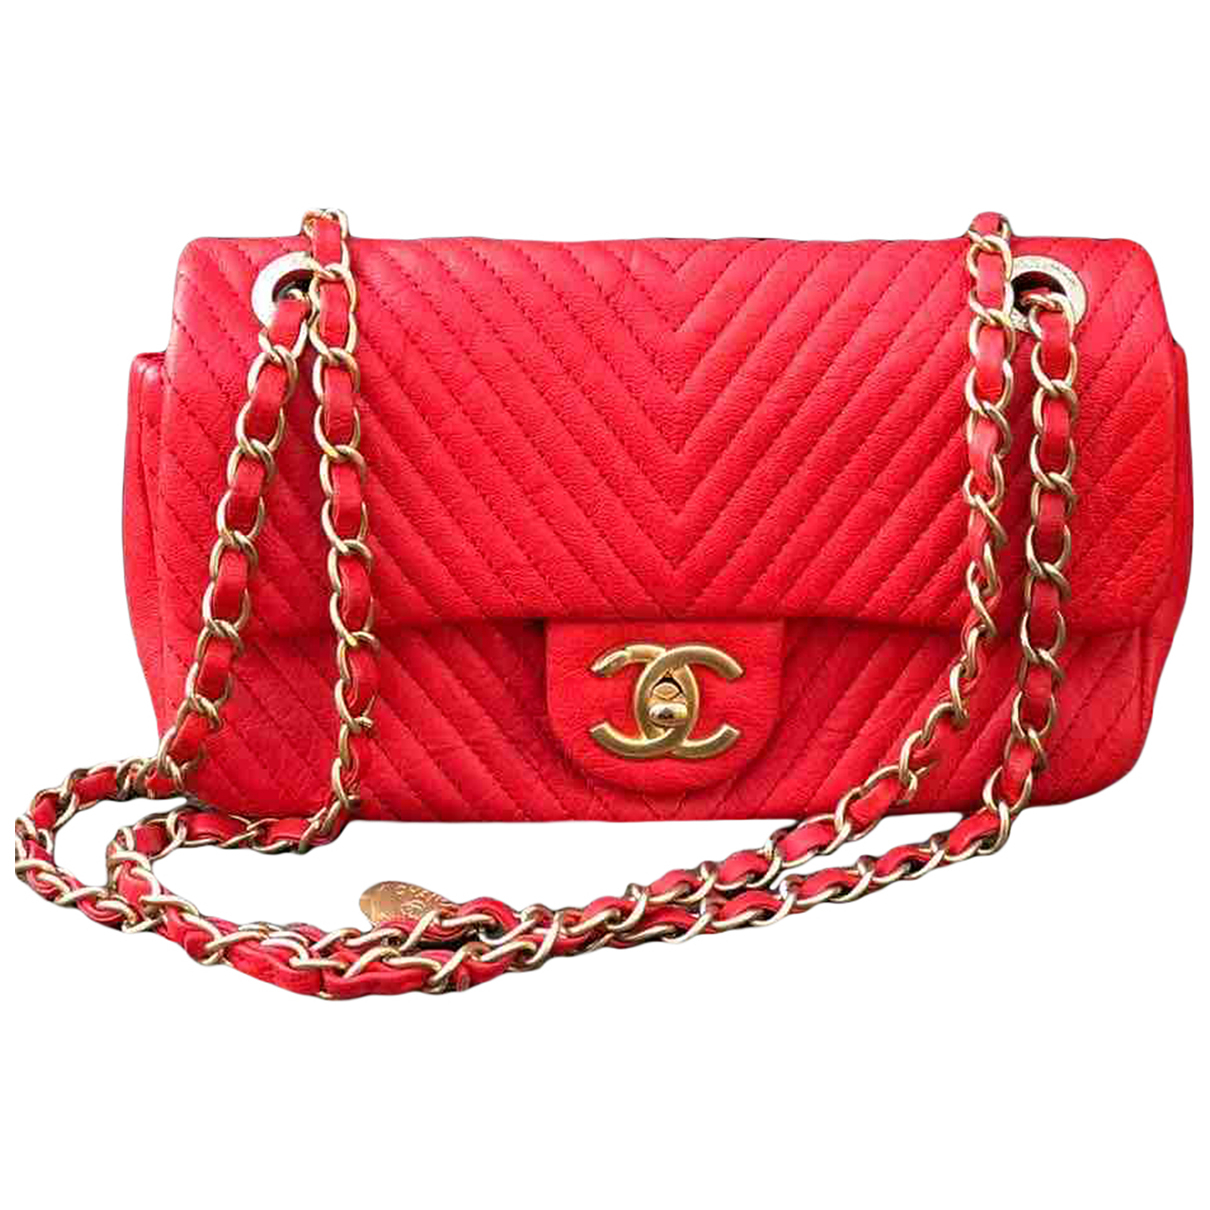 Chanel Timeless/Classique Red Leather handbag for Women \N